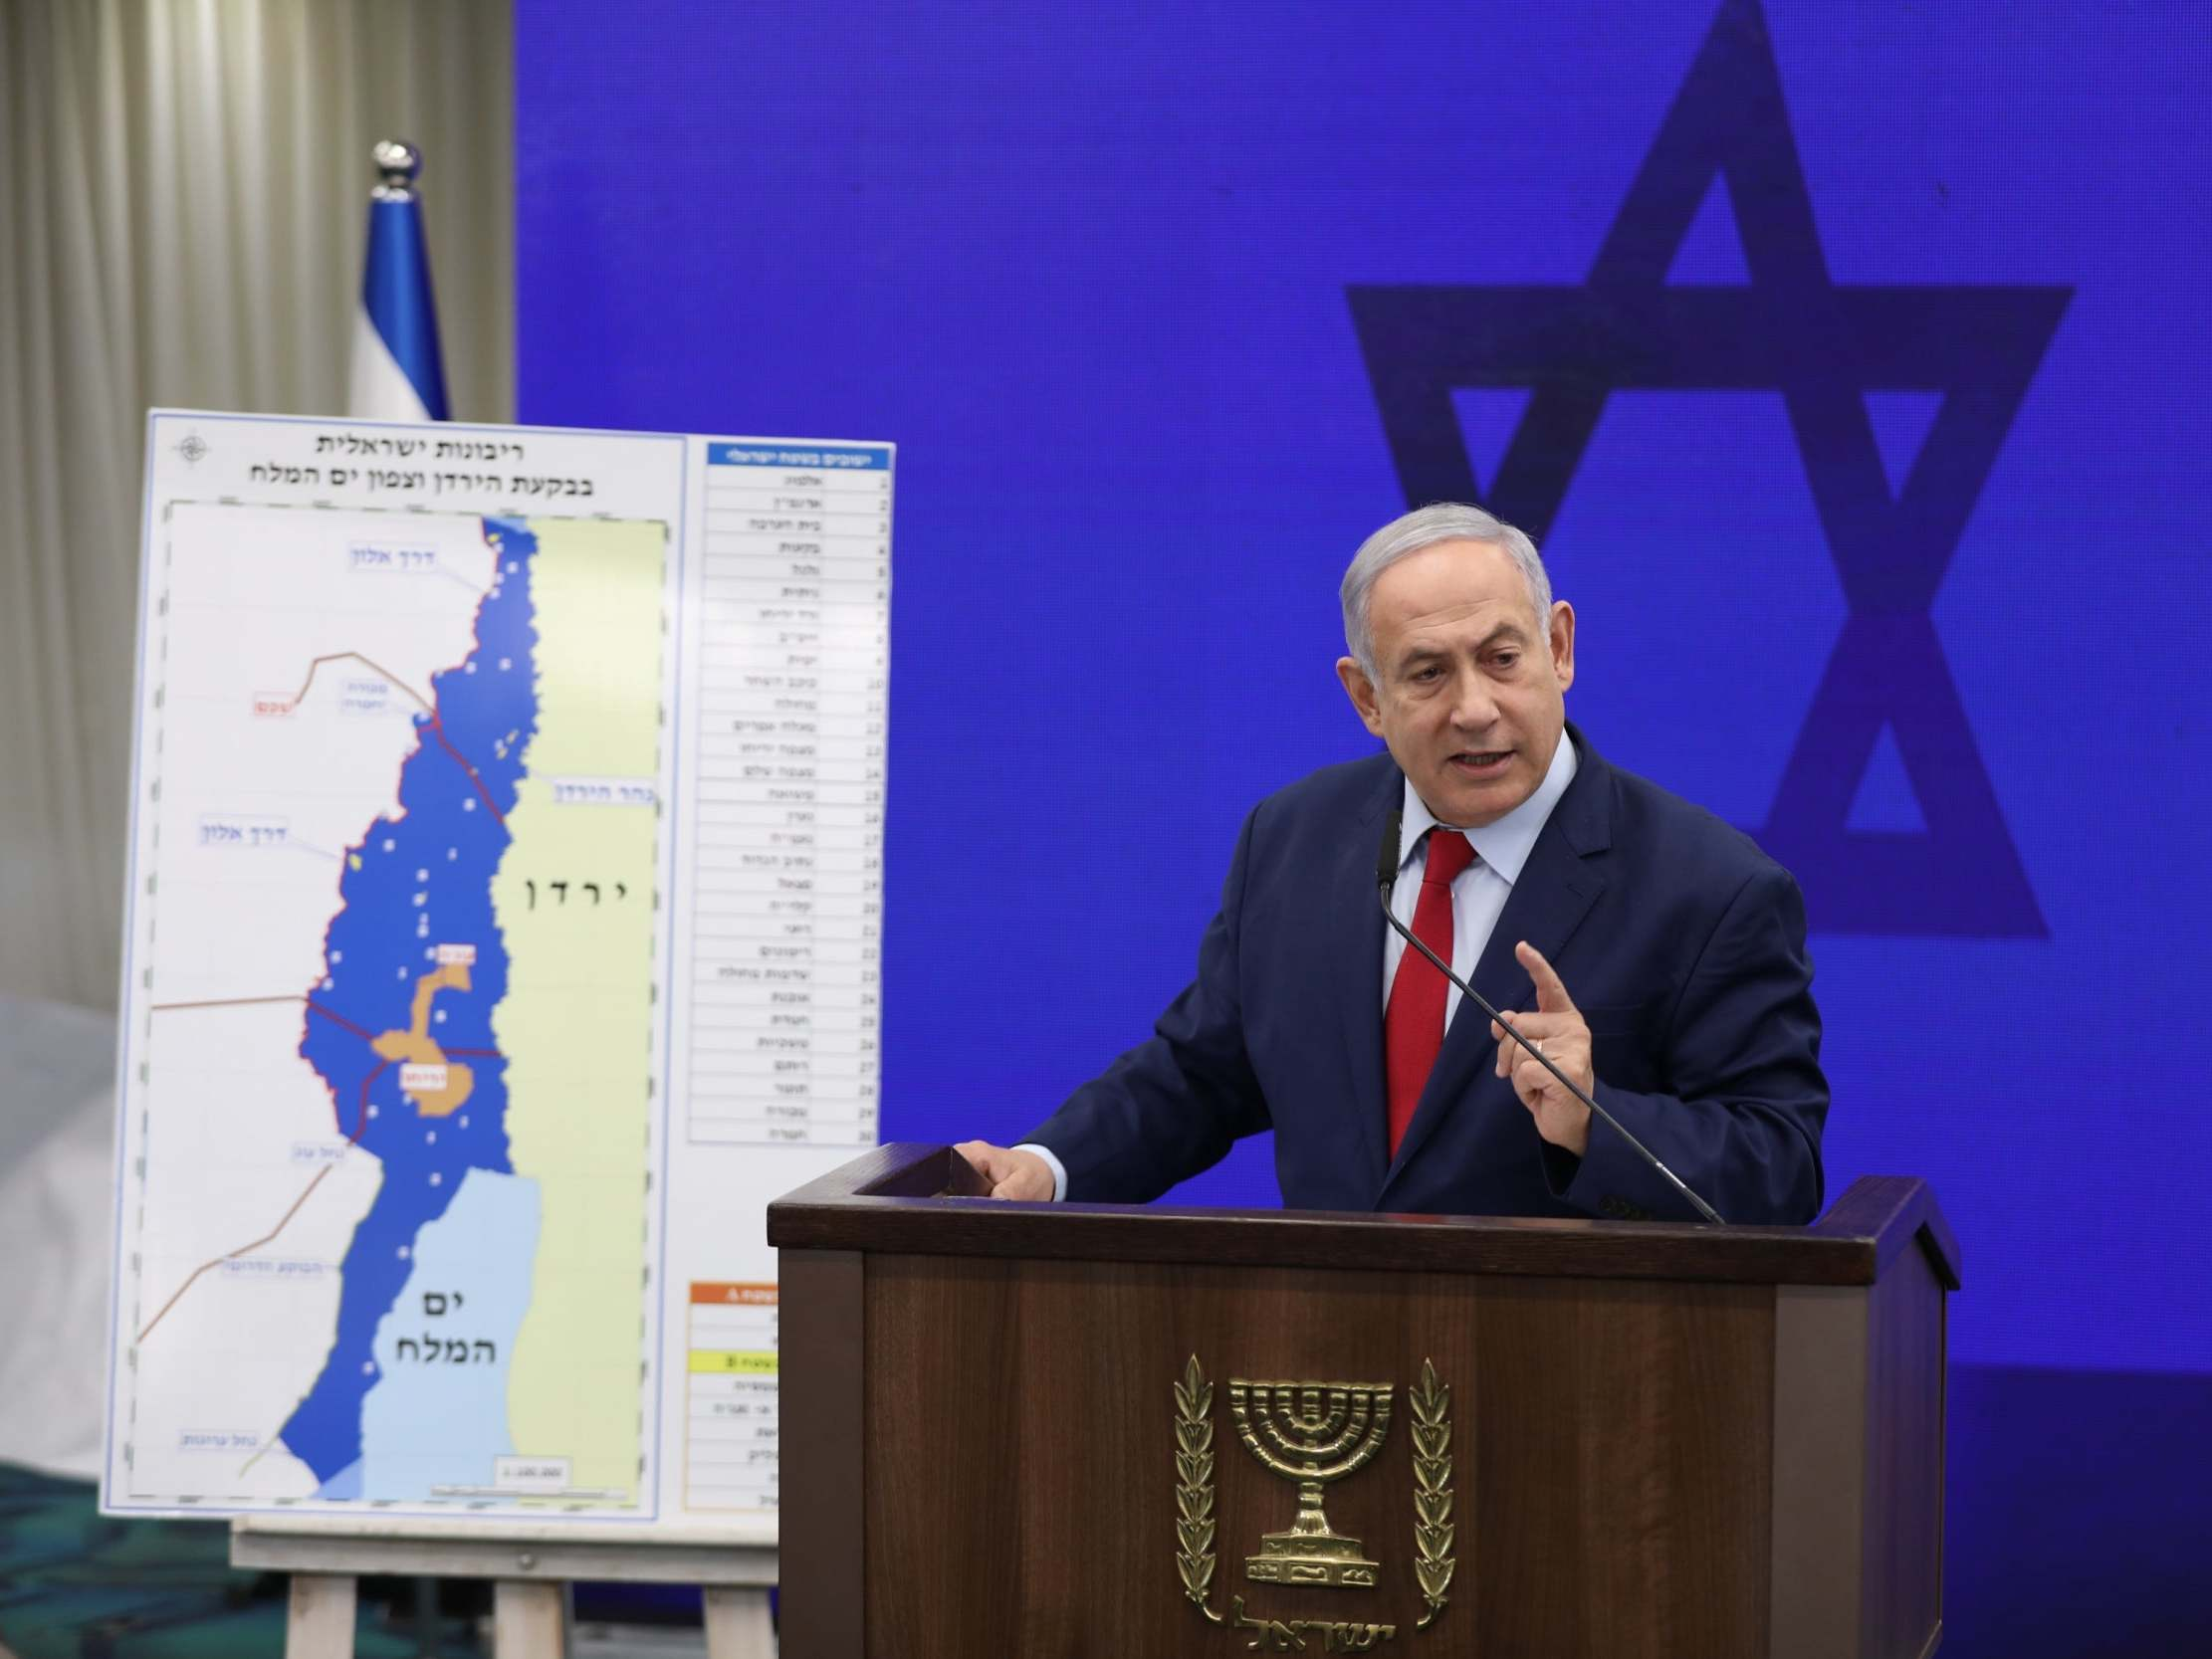 Netanyahu embarks on colonial plunder while the world reels under the flailing of its fragile tyrants